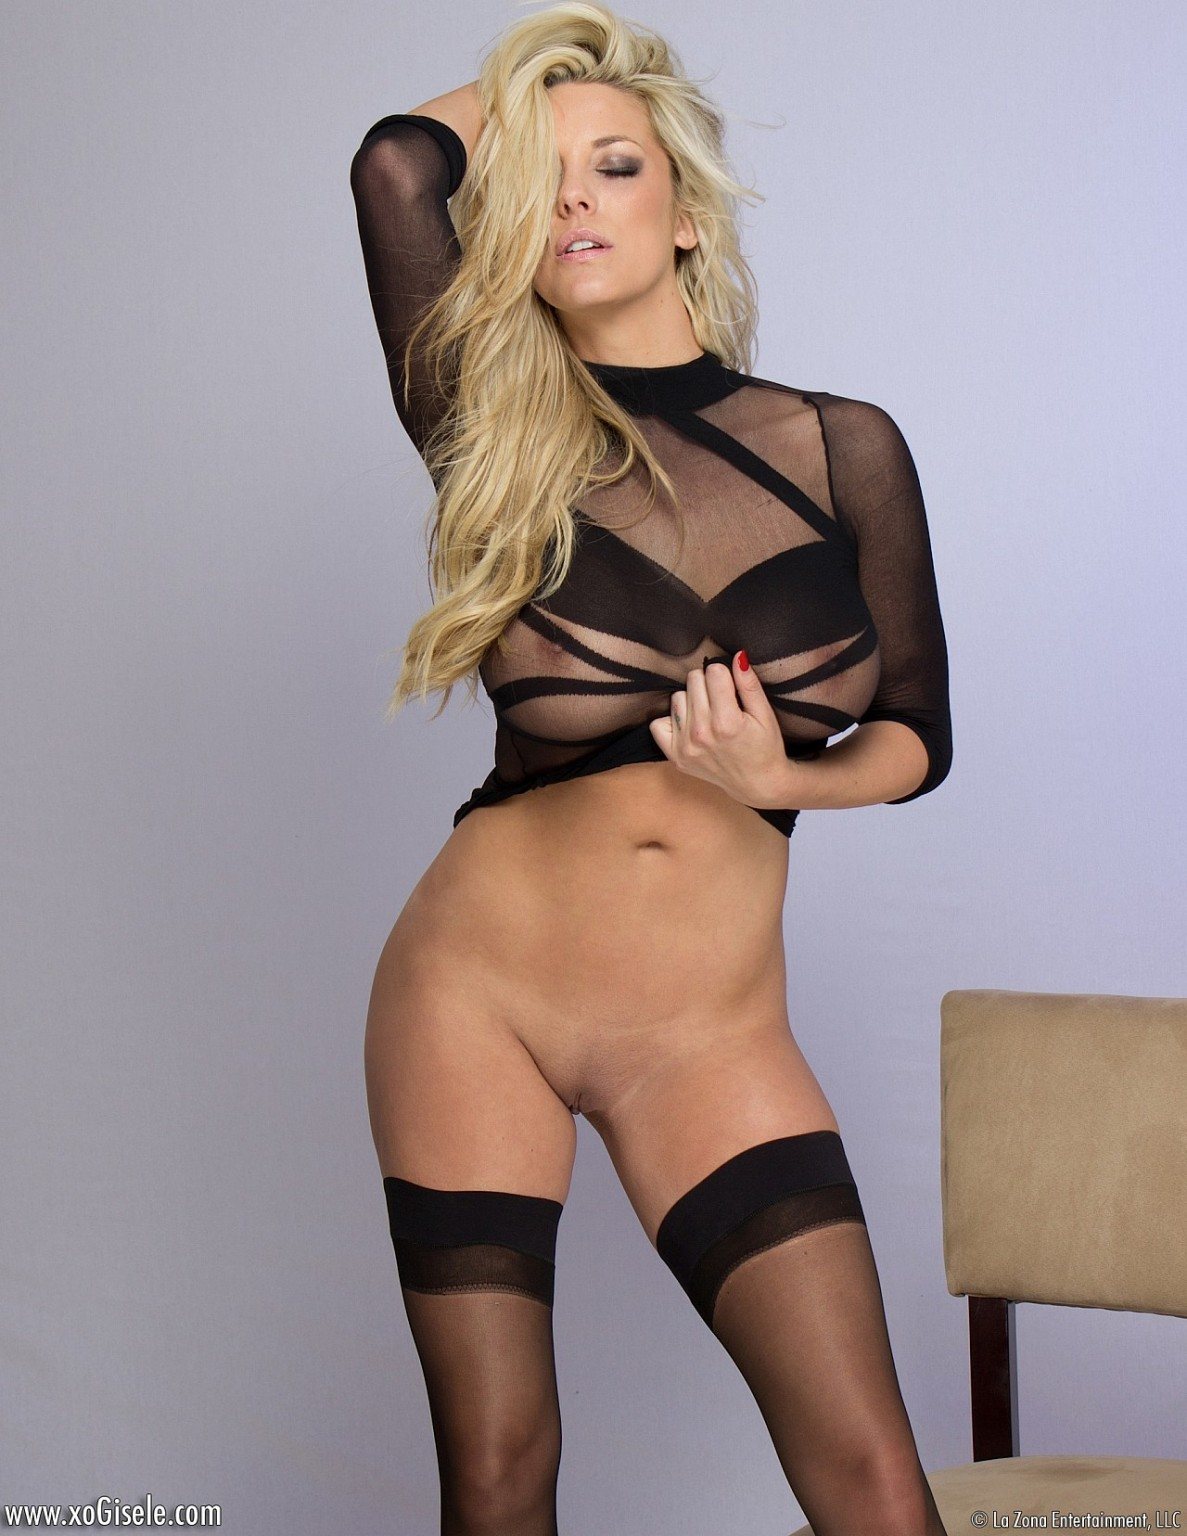 Appealing fairy-haired bombshell xo gisele makes known all in sheer